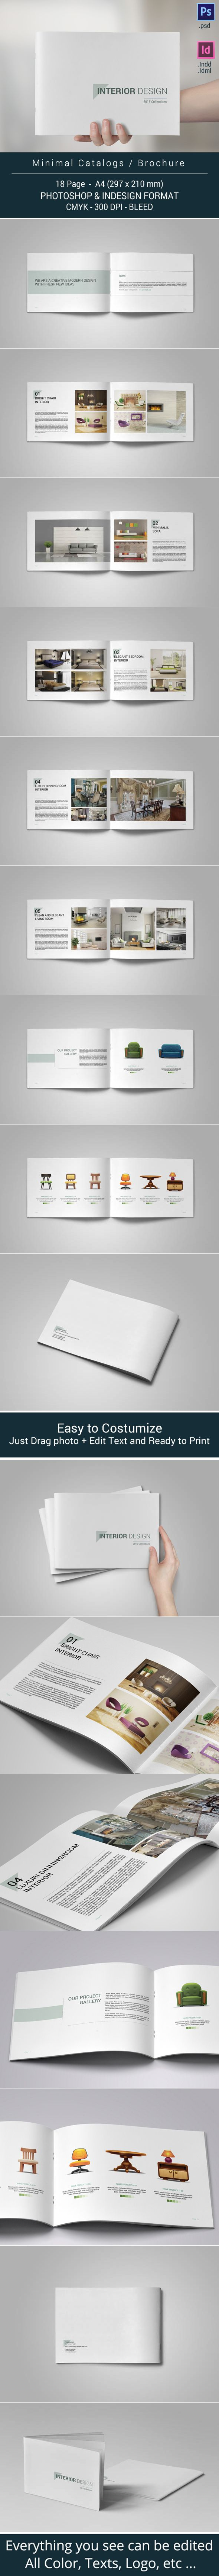 MINIMAL - Interior Design Brochure on Behance